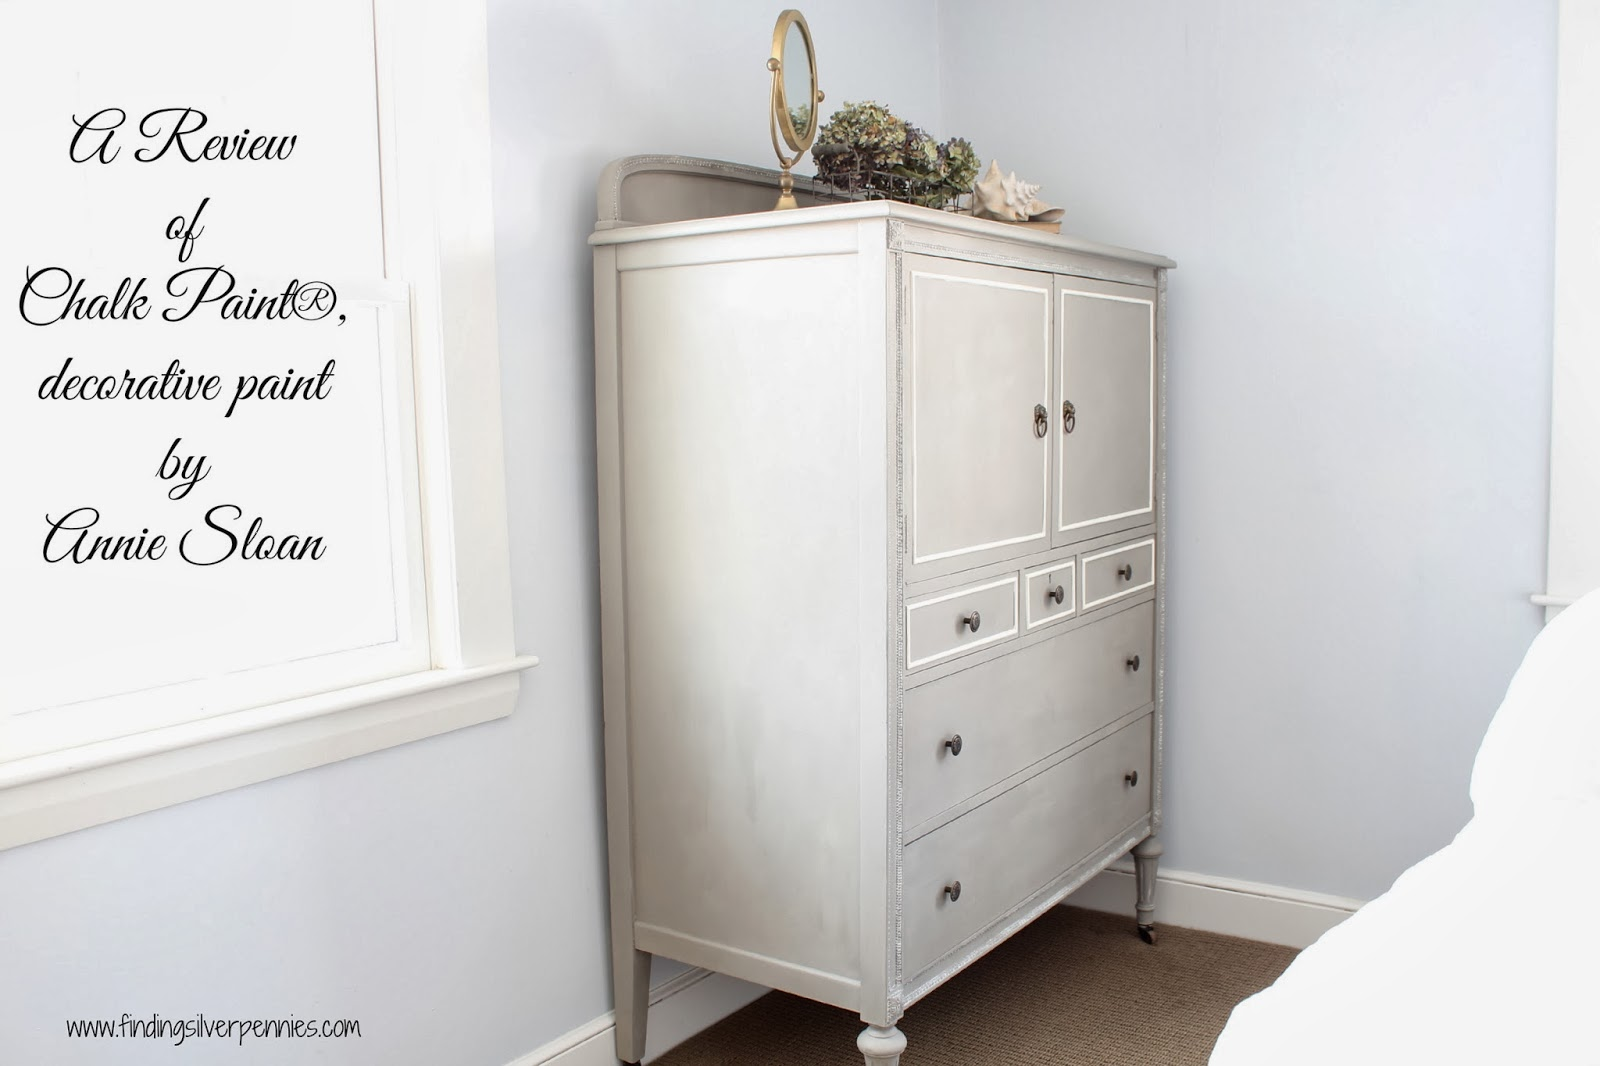 A Chalk Paint Review & The Clifton Armoire